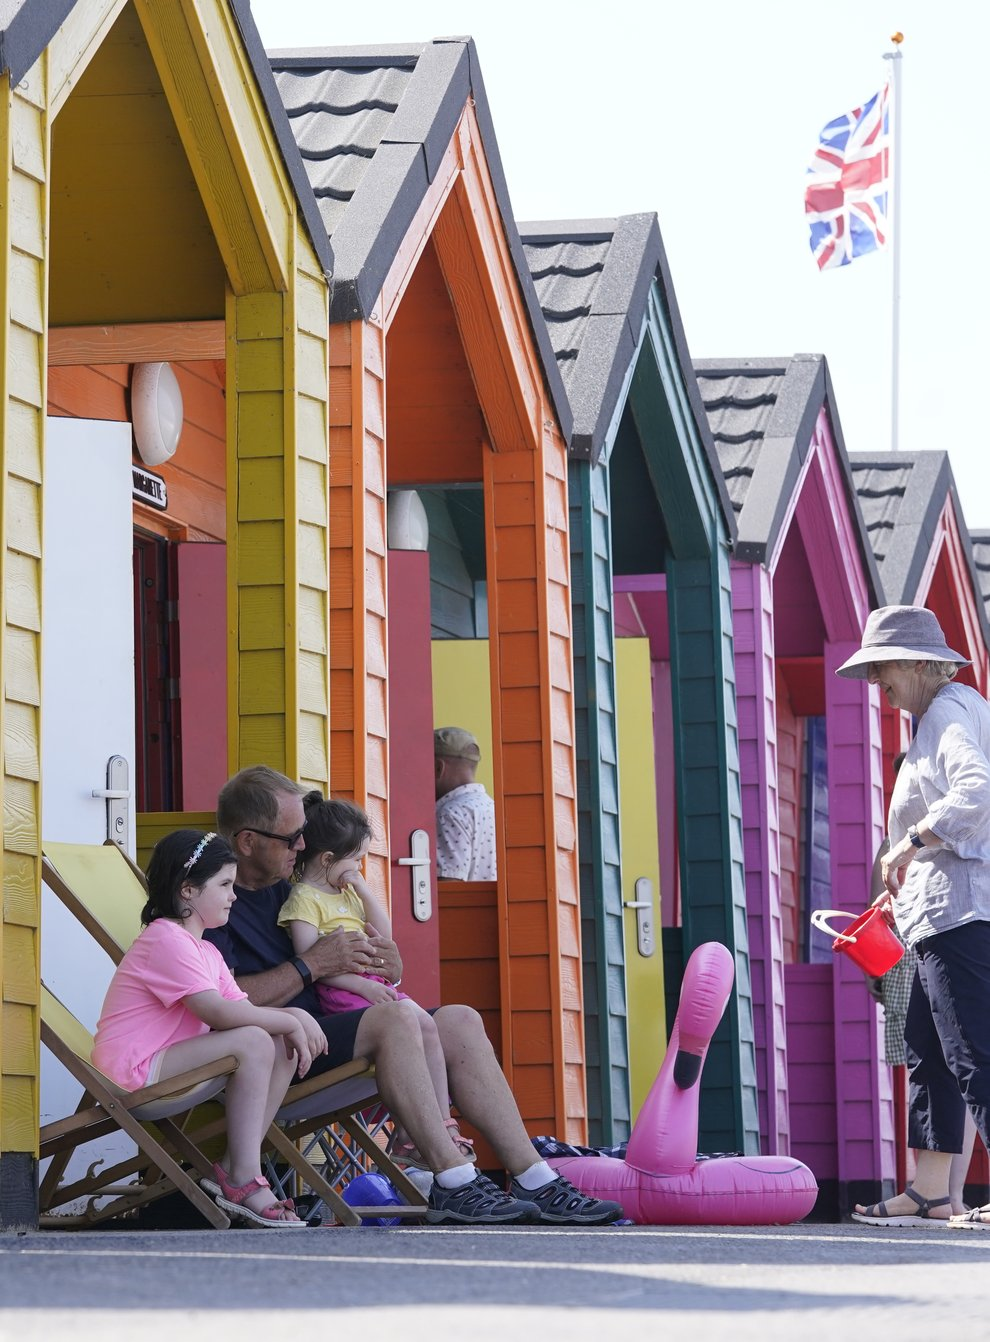 People by the beach at Saltburn-by-the-Sea in North Yorkshire. A heatwave which has baked the UK over the last few days is expected to end with thunderstorms across much of England and Wales this weekend, forecasters have warned. Picture date: Thursday July 22, 2021.